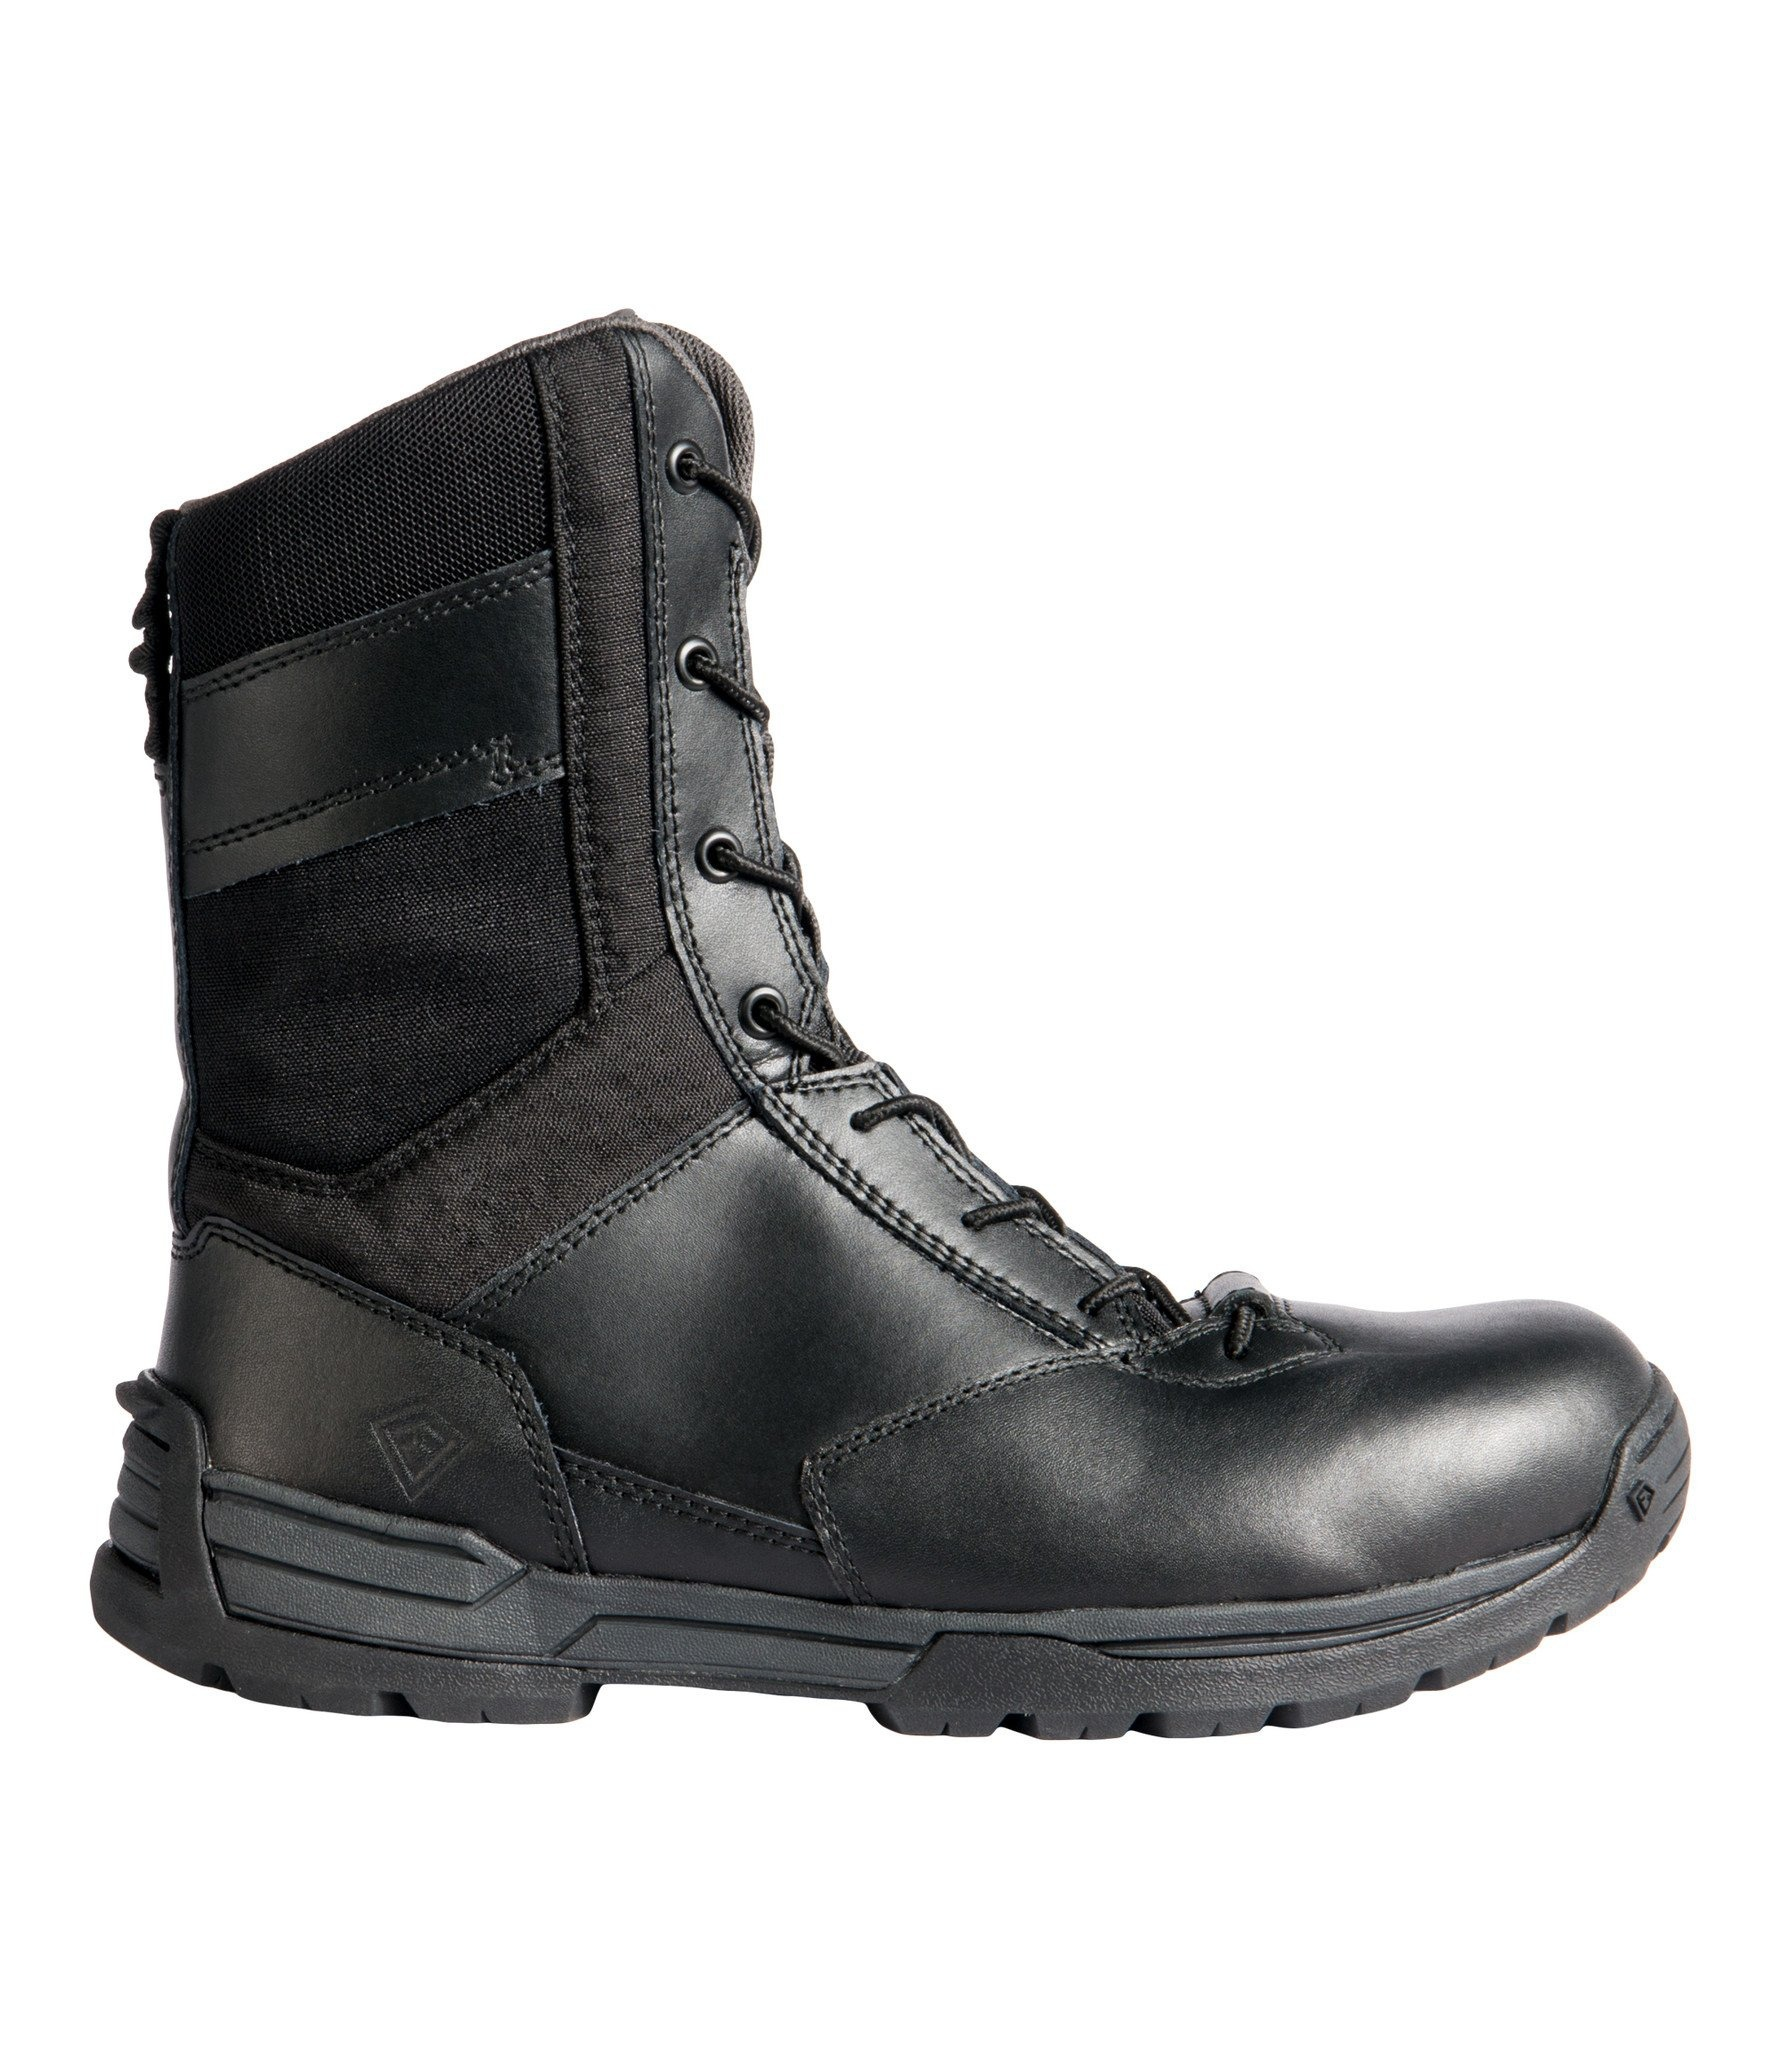 Image of Buty first tactical side zip duty m's 8' 165000 - rozmiar (a) 41 (u1t/165000 019 7 - 41)